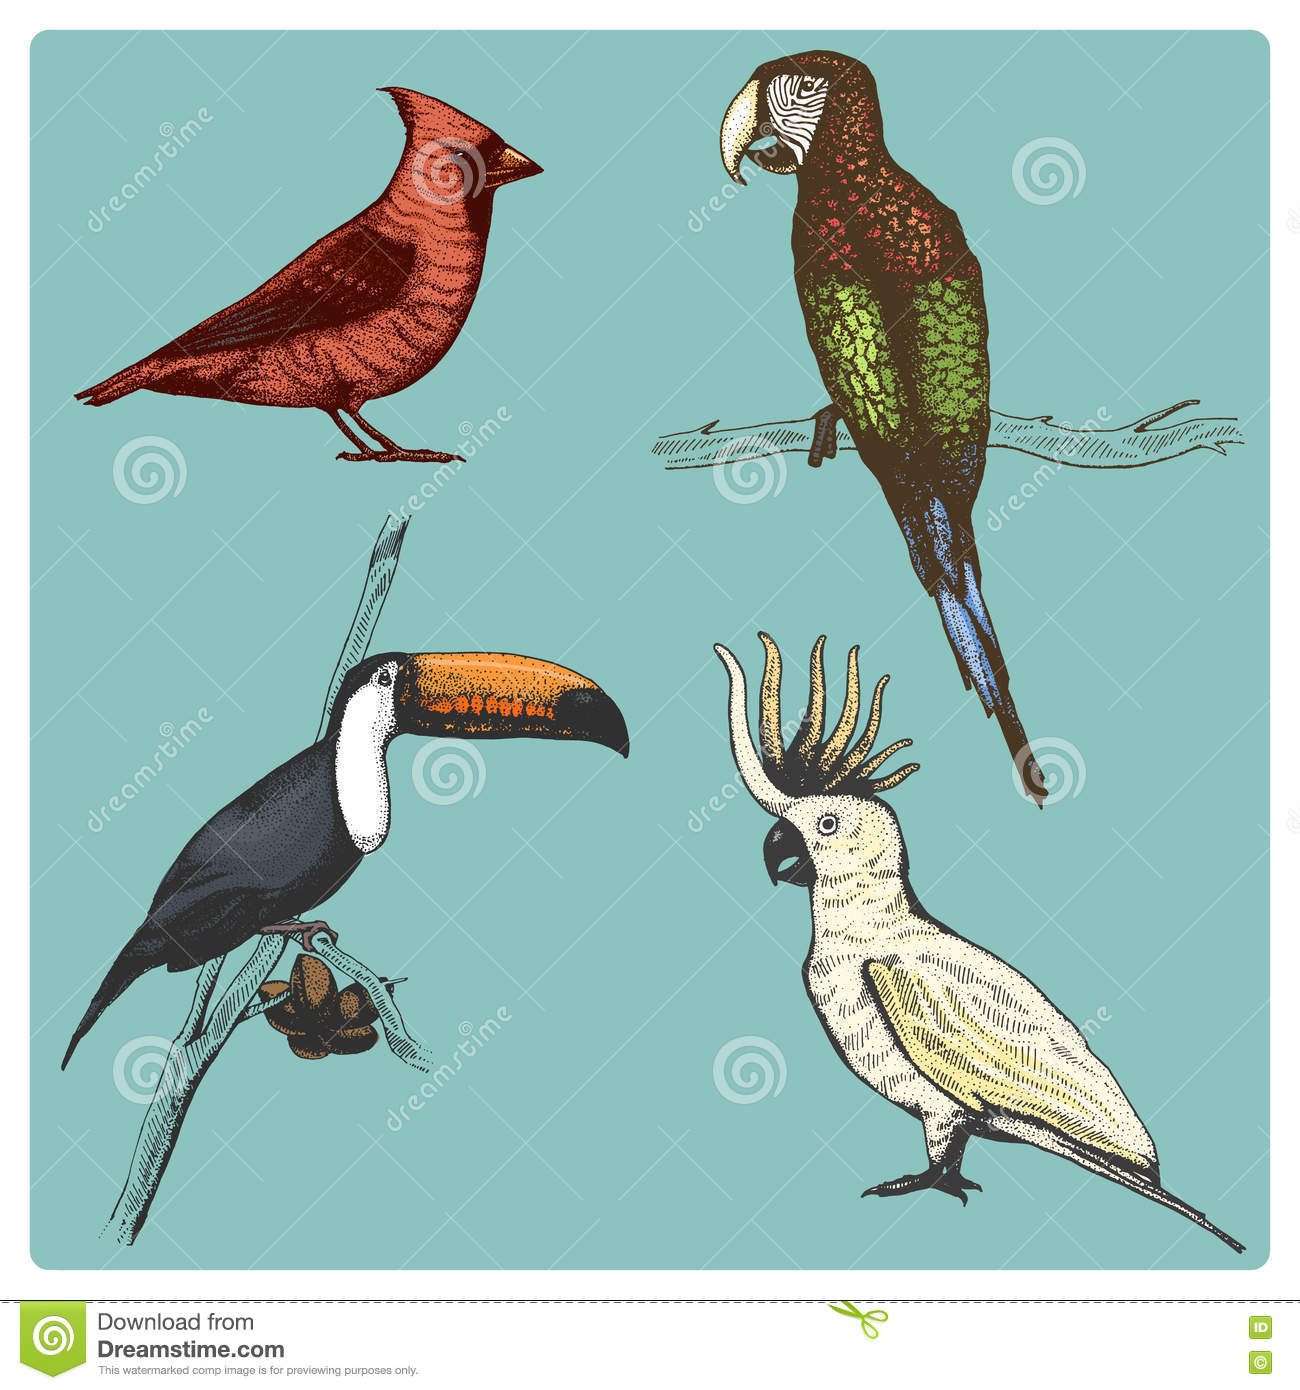 Hand drawn vector realistic bird, sketch graphic style,